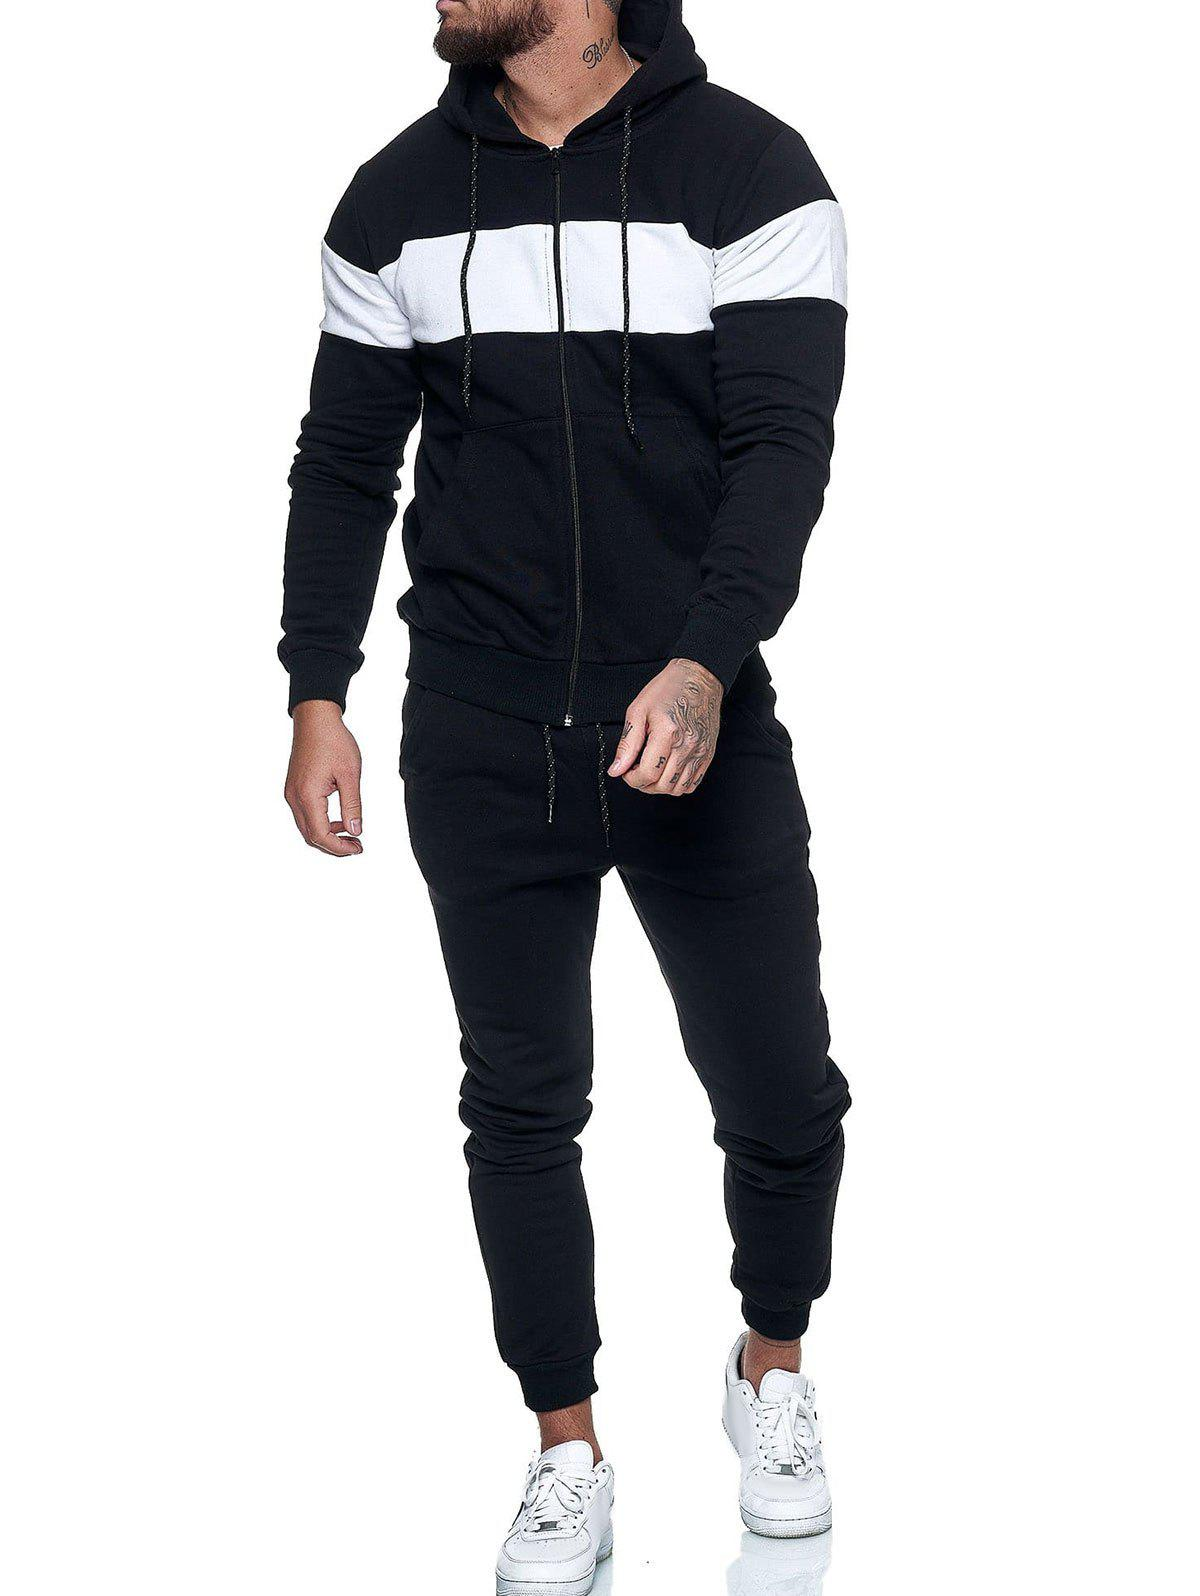 Latest Contrast Zip Up Hoodie Jacket and Pants Sports Two Piece Set